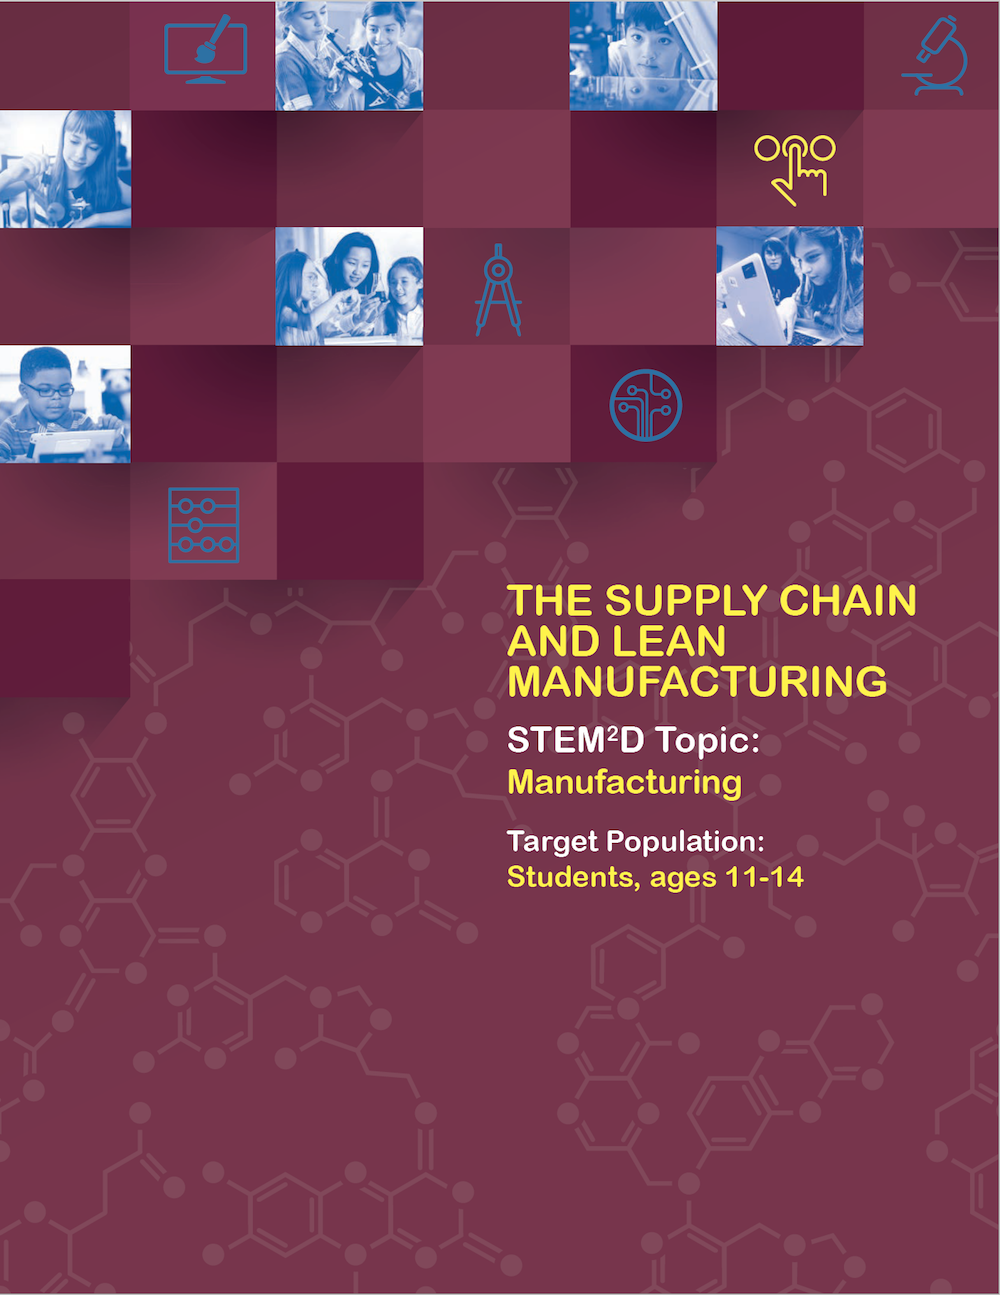 SUPPLY CHAIN LEAN MANUFACTURING cover-large.png